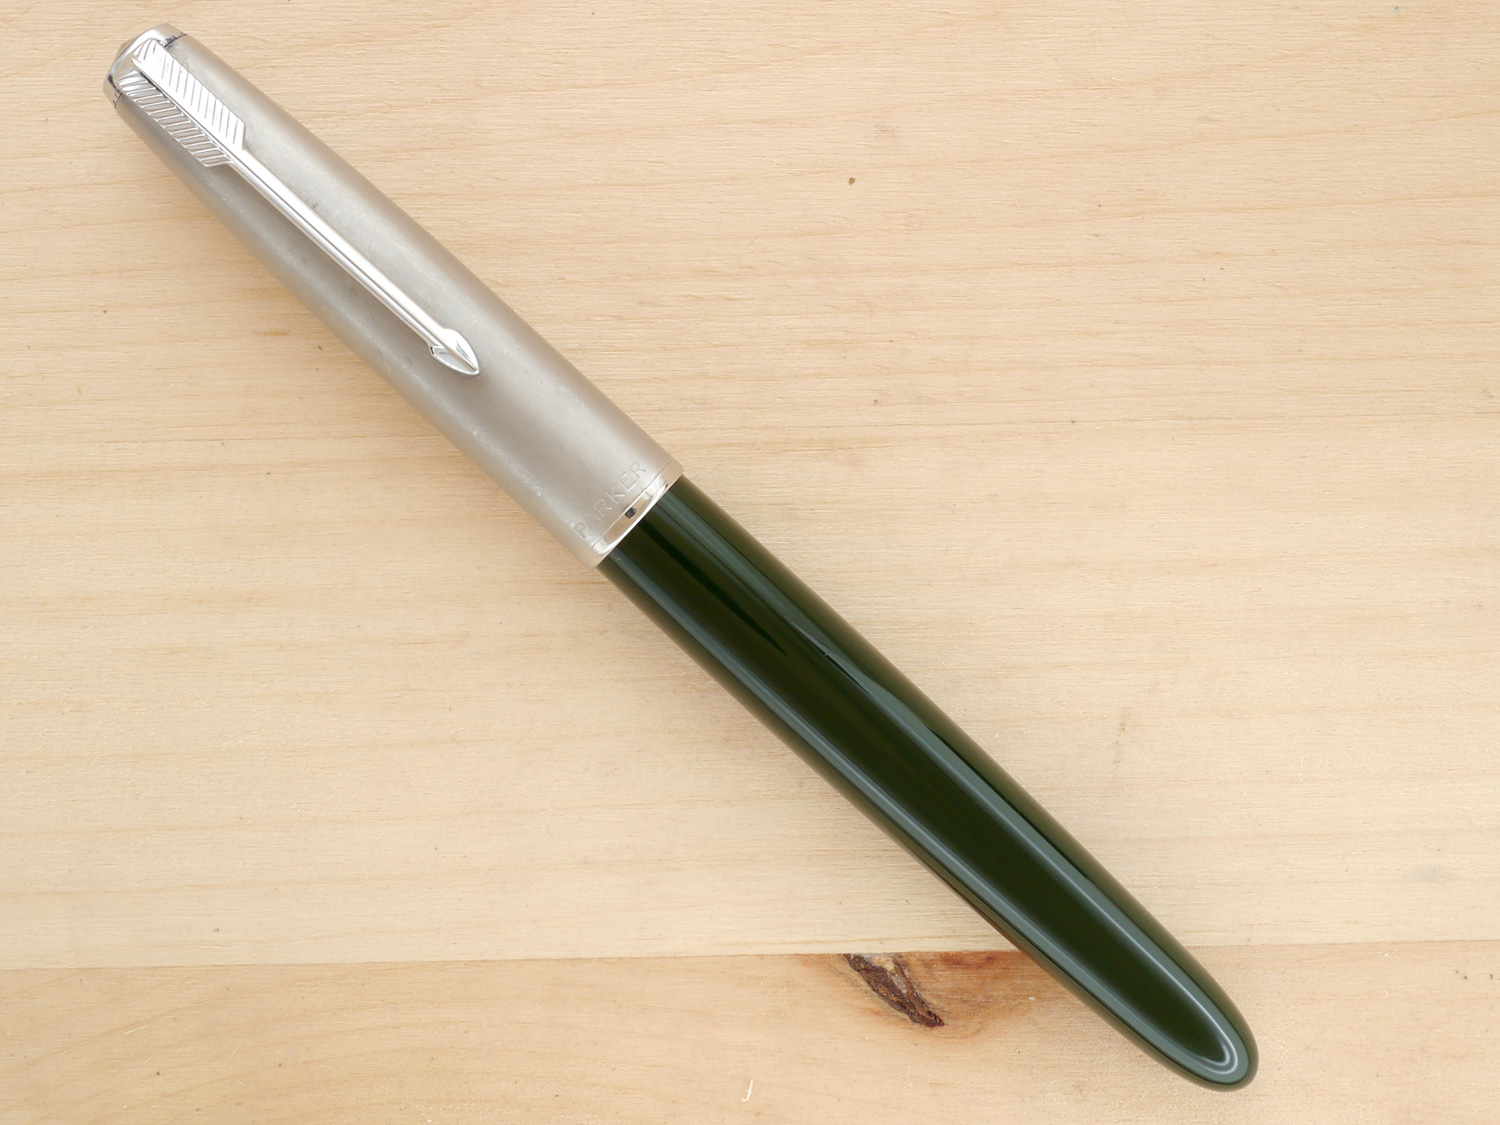 Parker 51 Aerometric Fountain Pen, Forest Green, XF, capped.